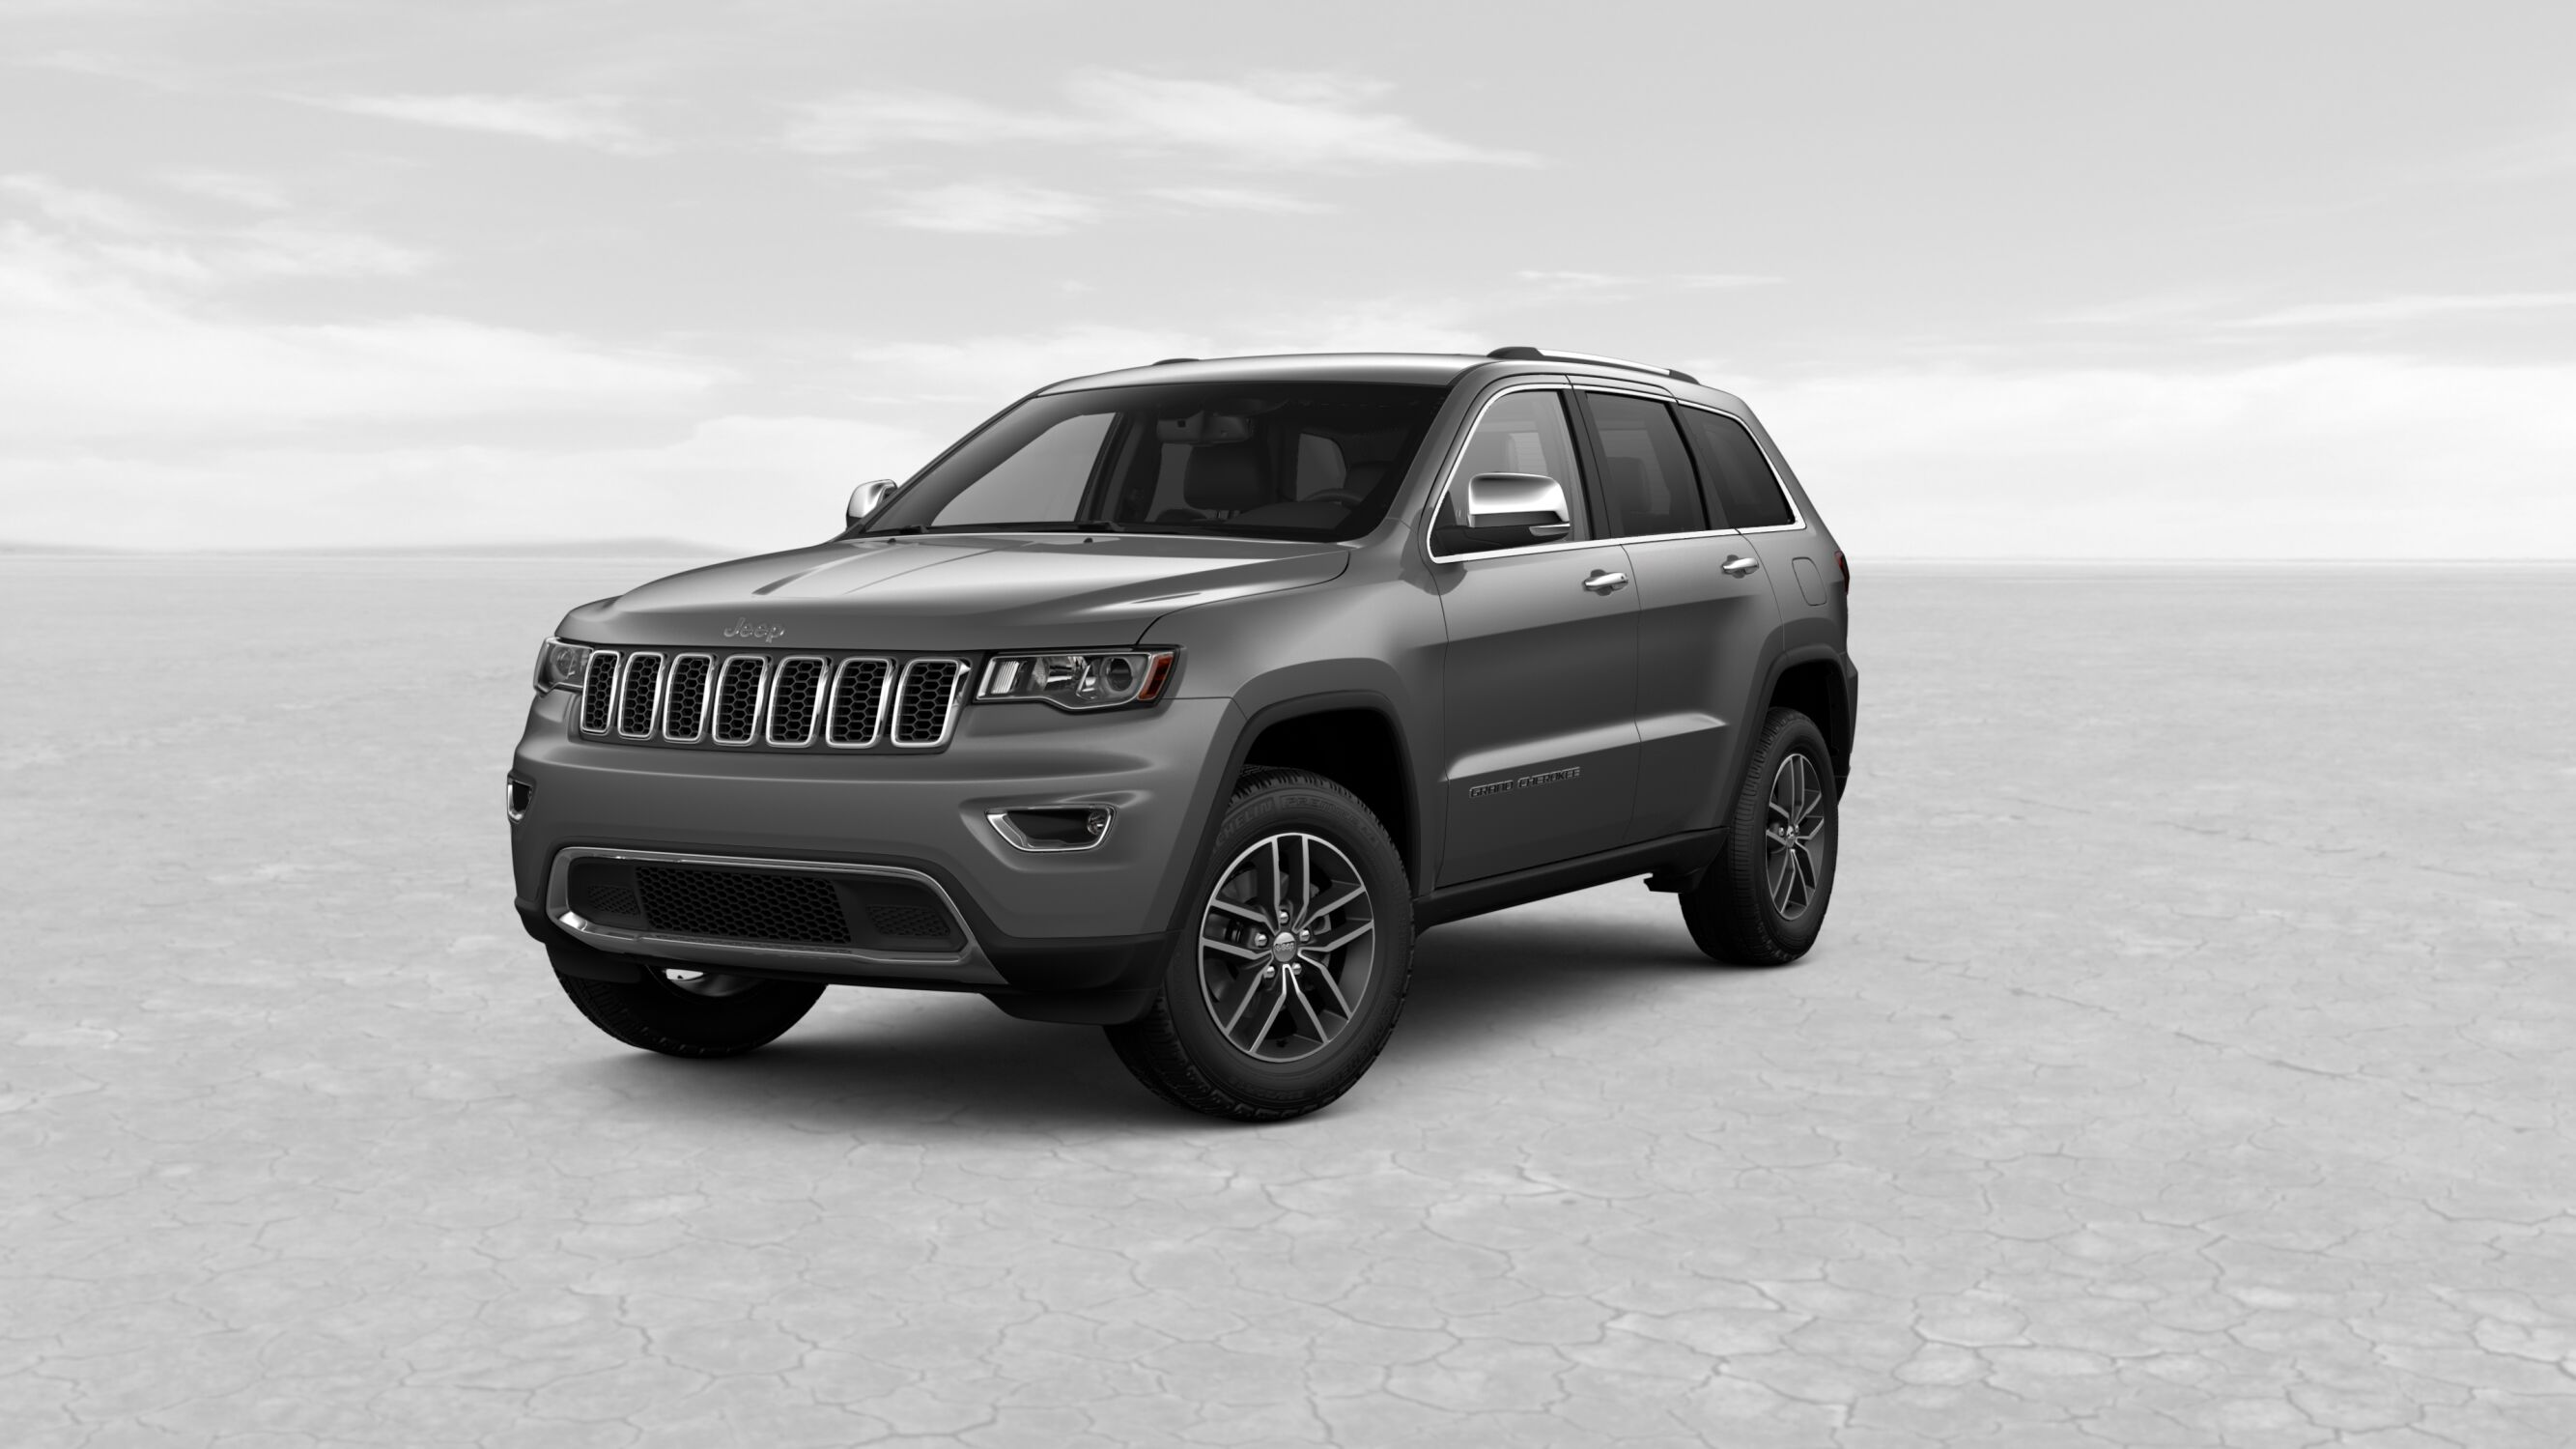 the trackhawk cherokee starting likely drive week price we circa grand this although official has reveal company in australian new maniacal us re to pricing yet jeep